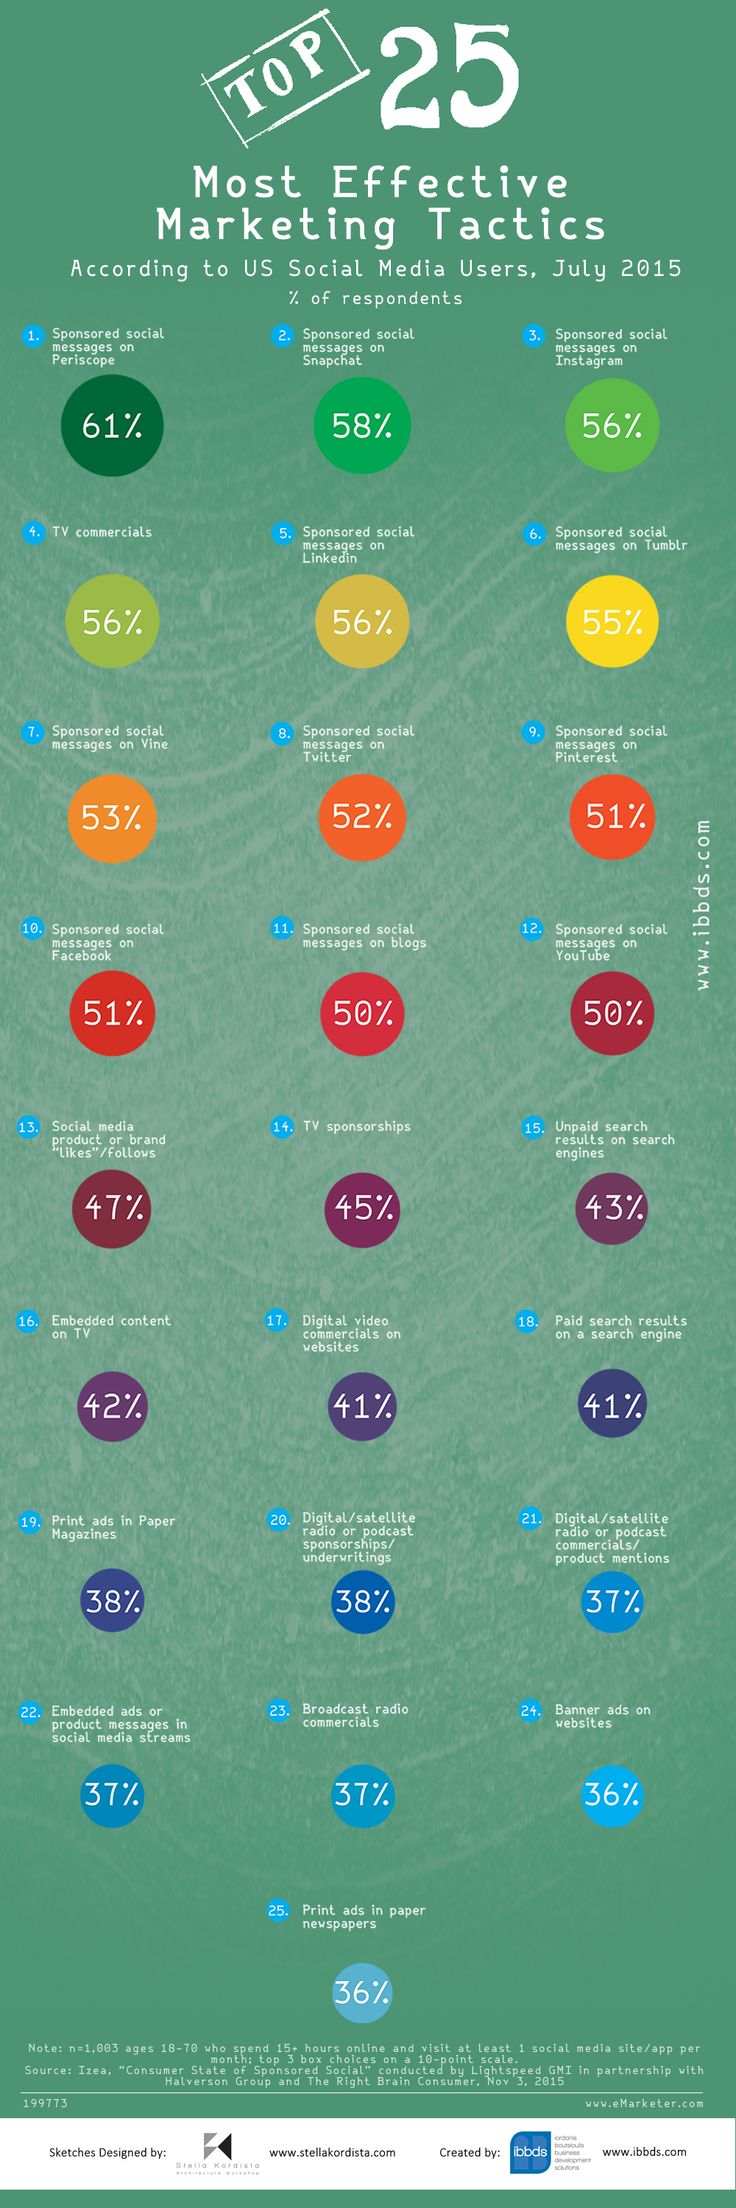 #Top #25 #Most #Effective #Marketing #Tactics #According to #US #Social #Media #Users #Infographic